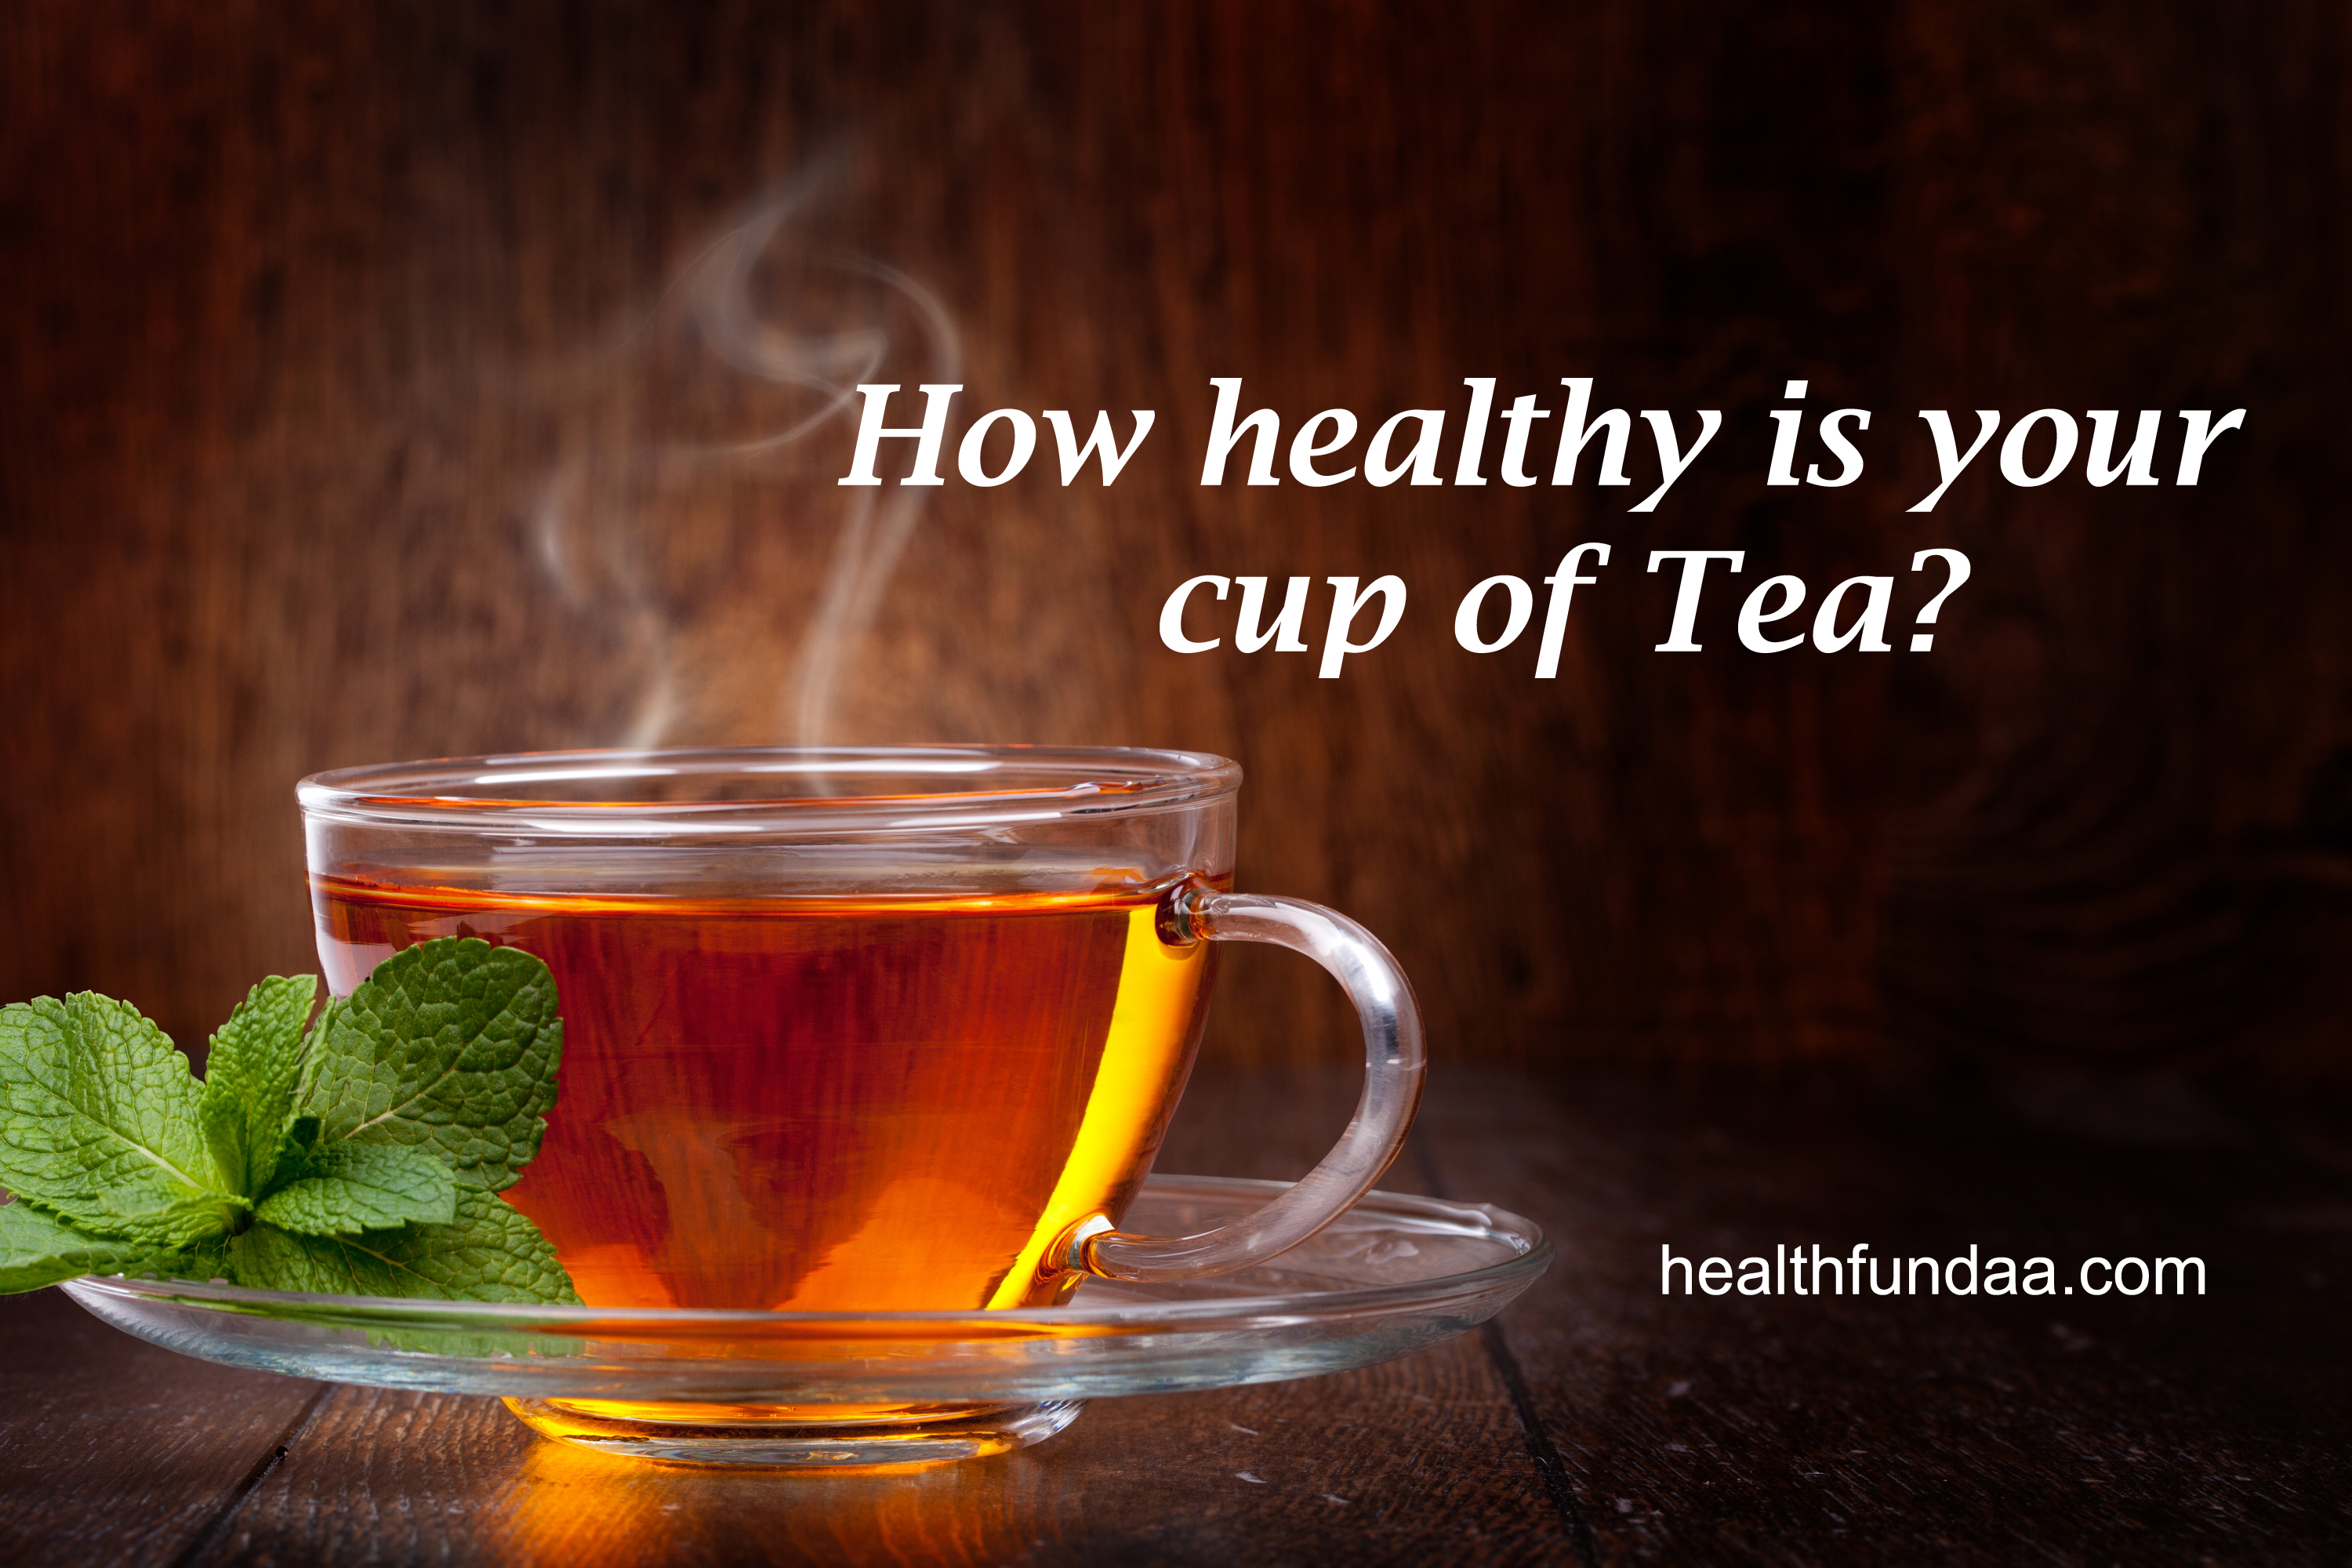 How healthy is your cup of Tea?